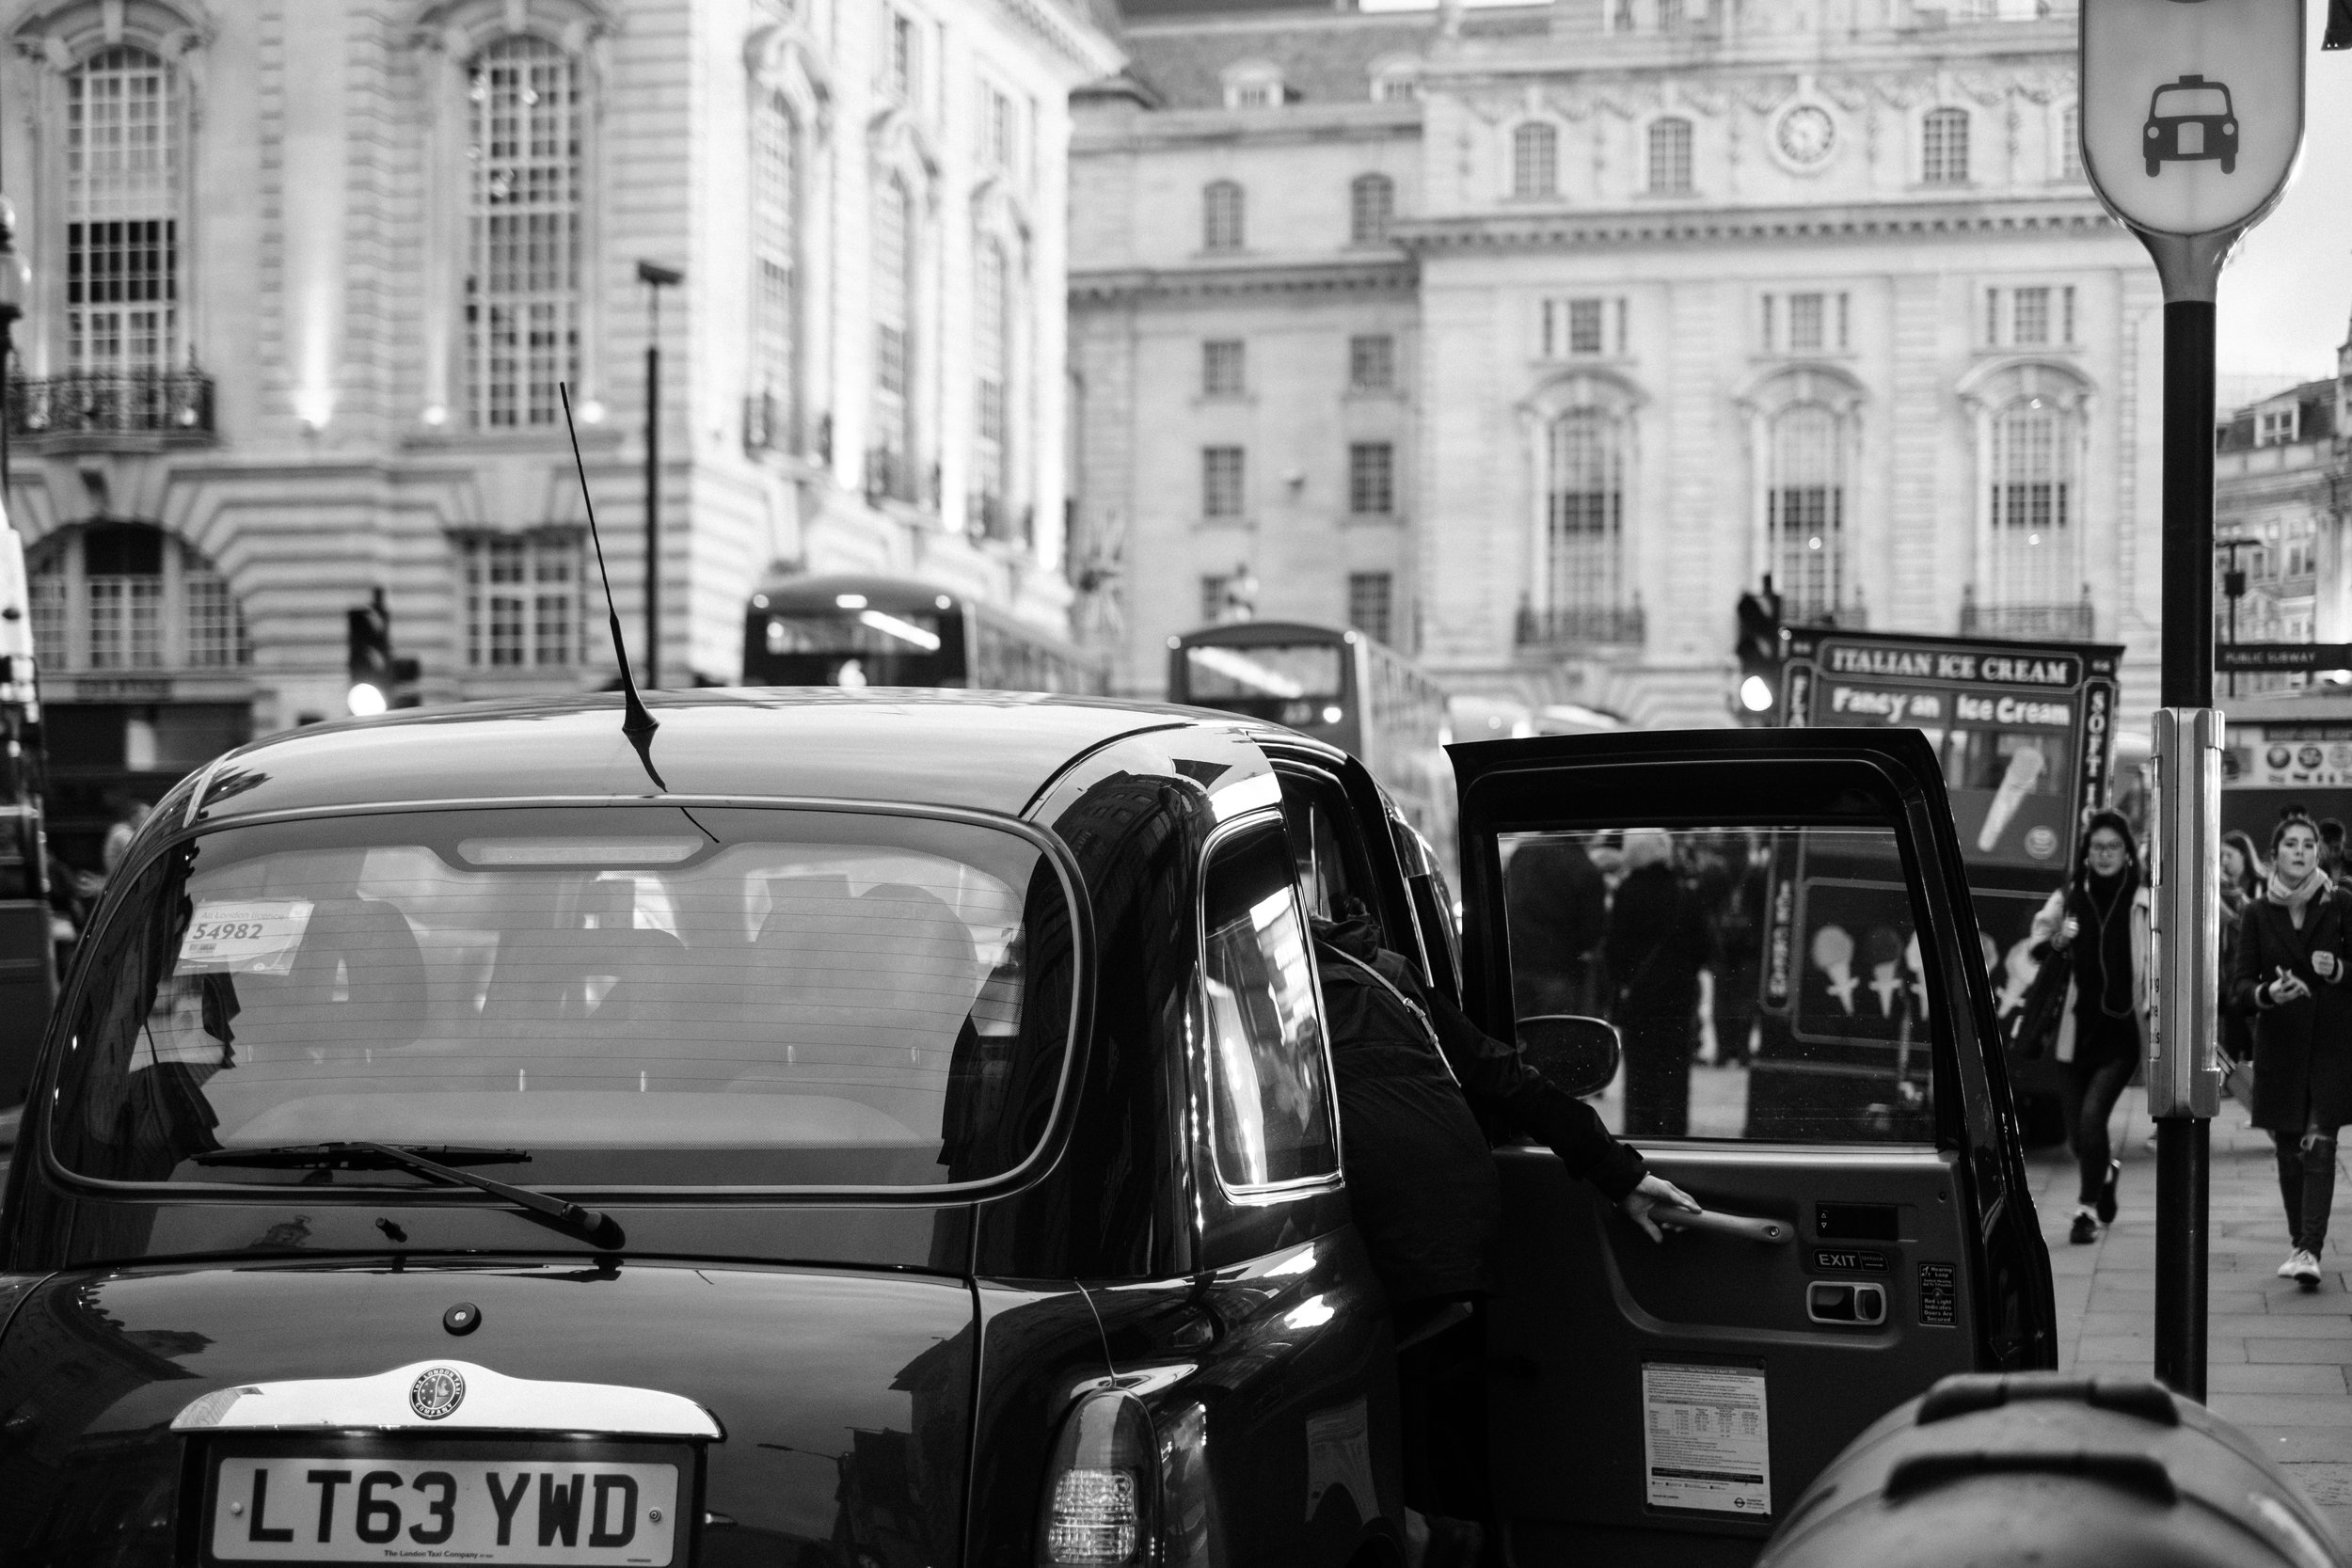 Cab ride near at Piccadilly Circus